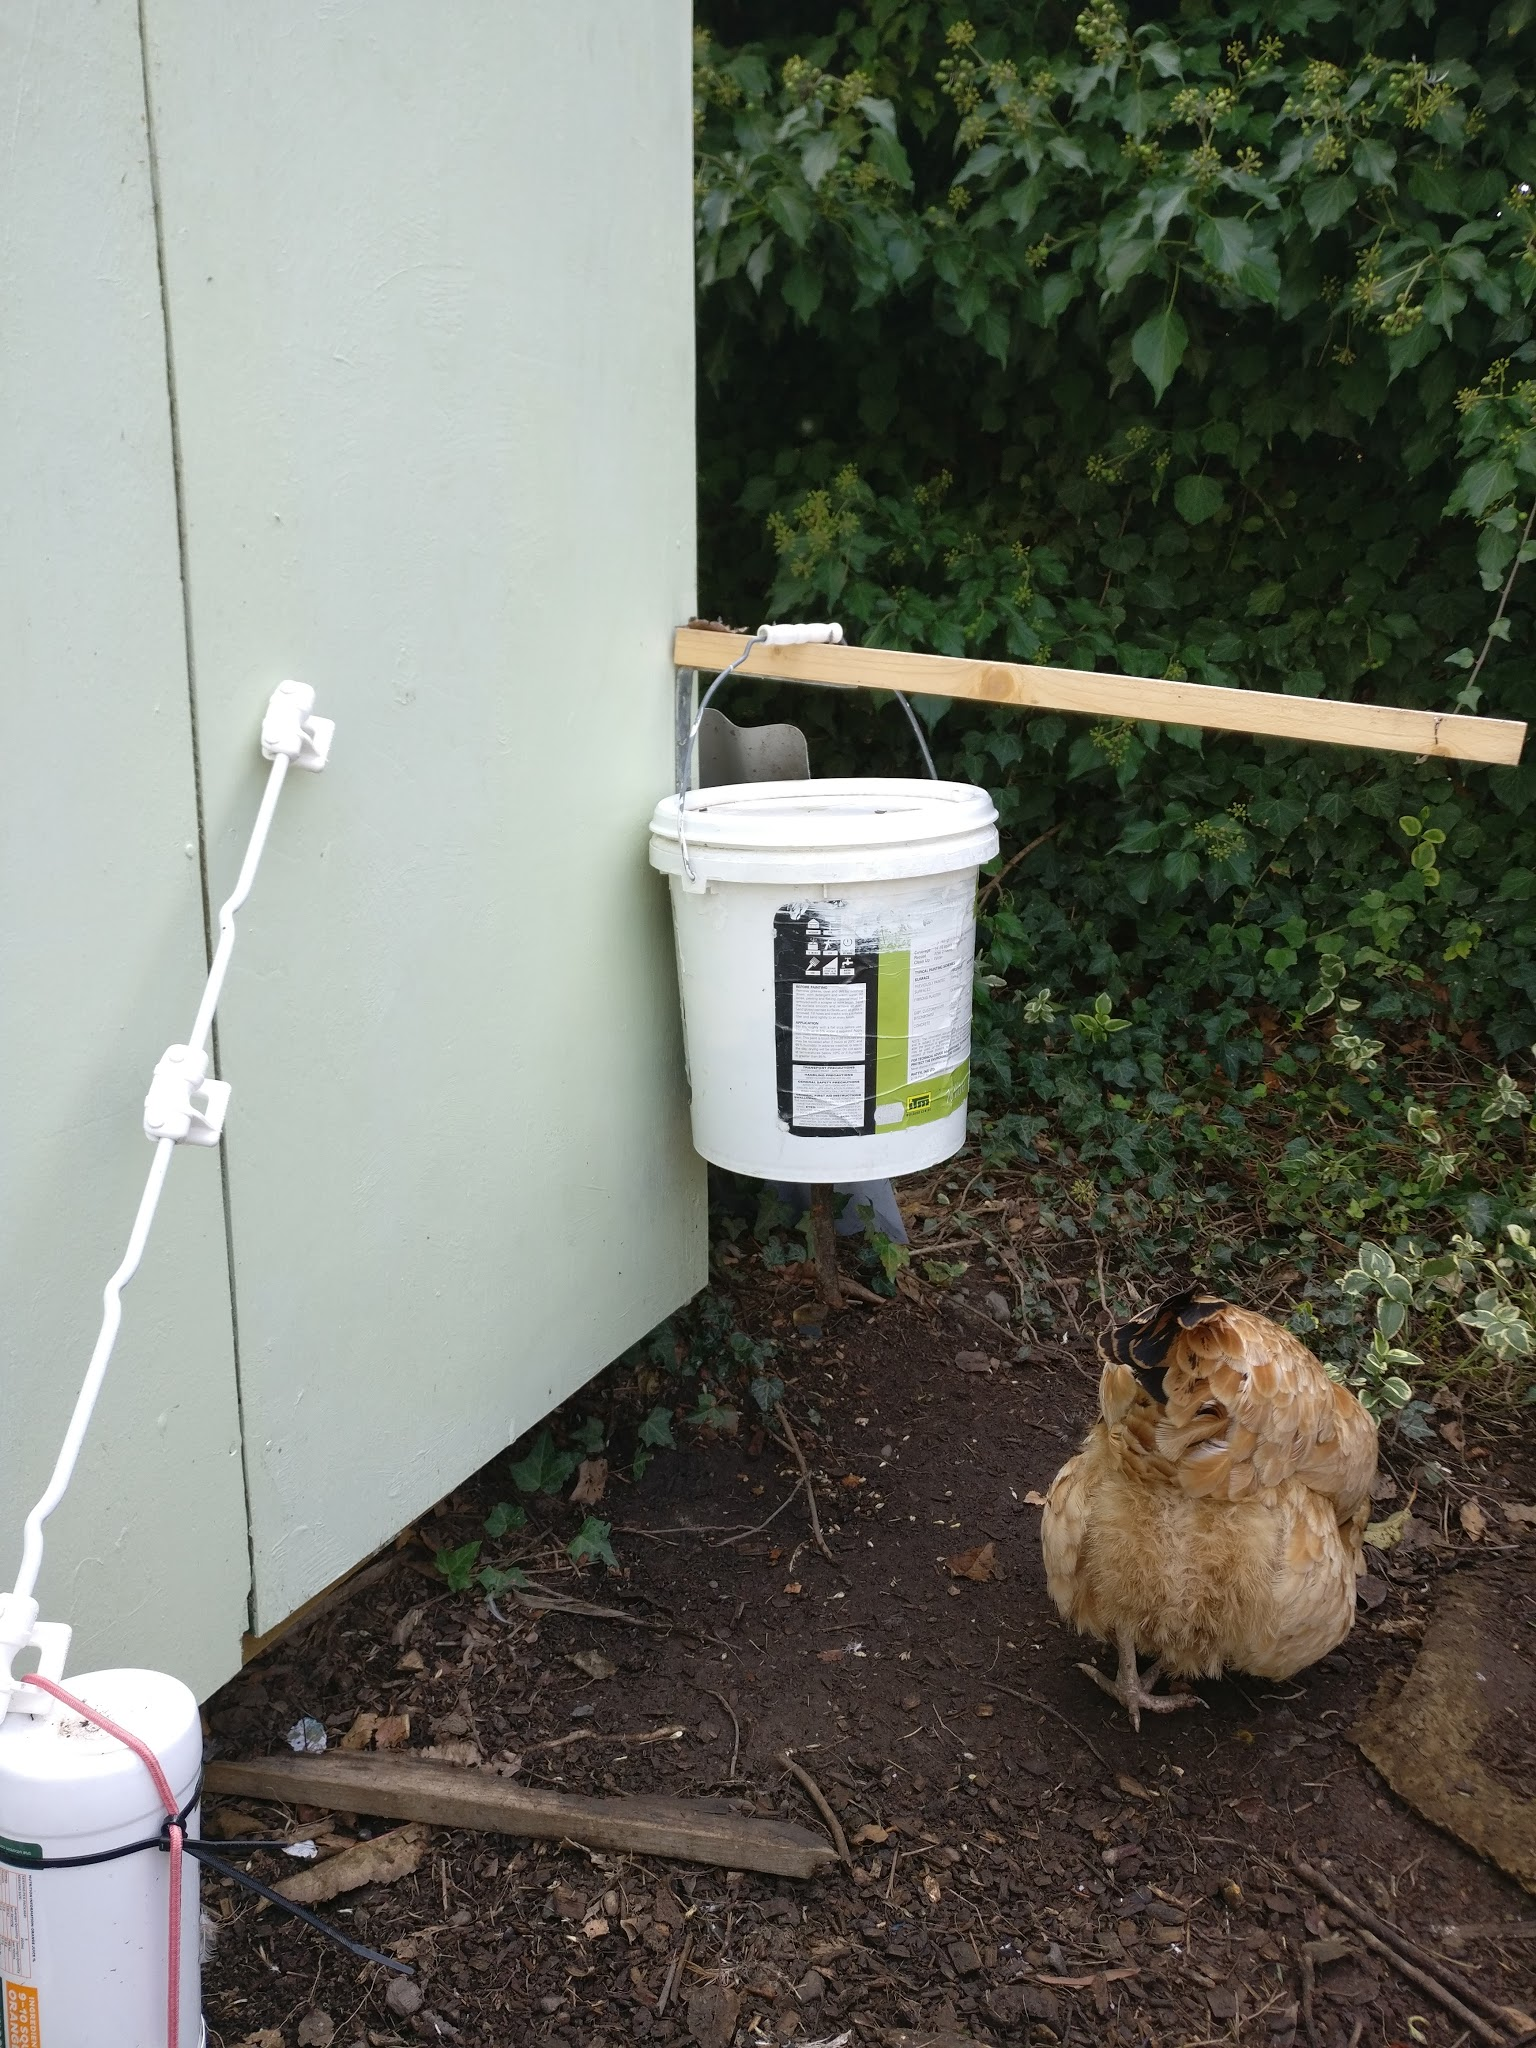 Picture of Rodent Proof Self-dispensing Chicken Feeder